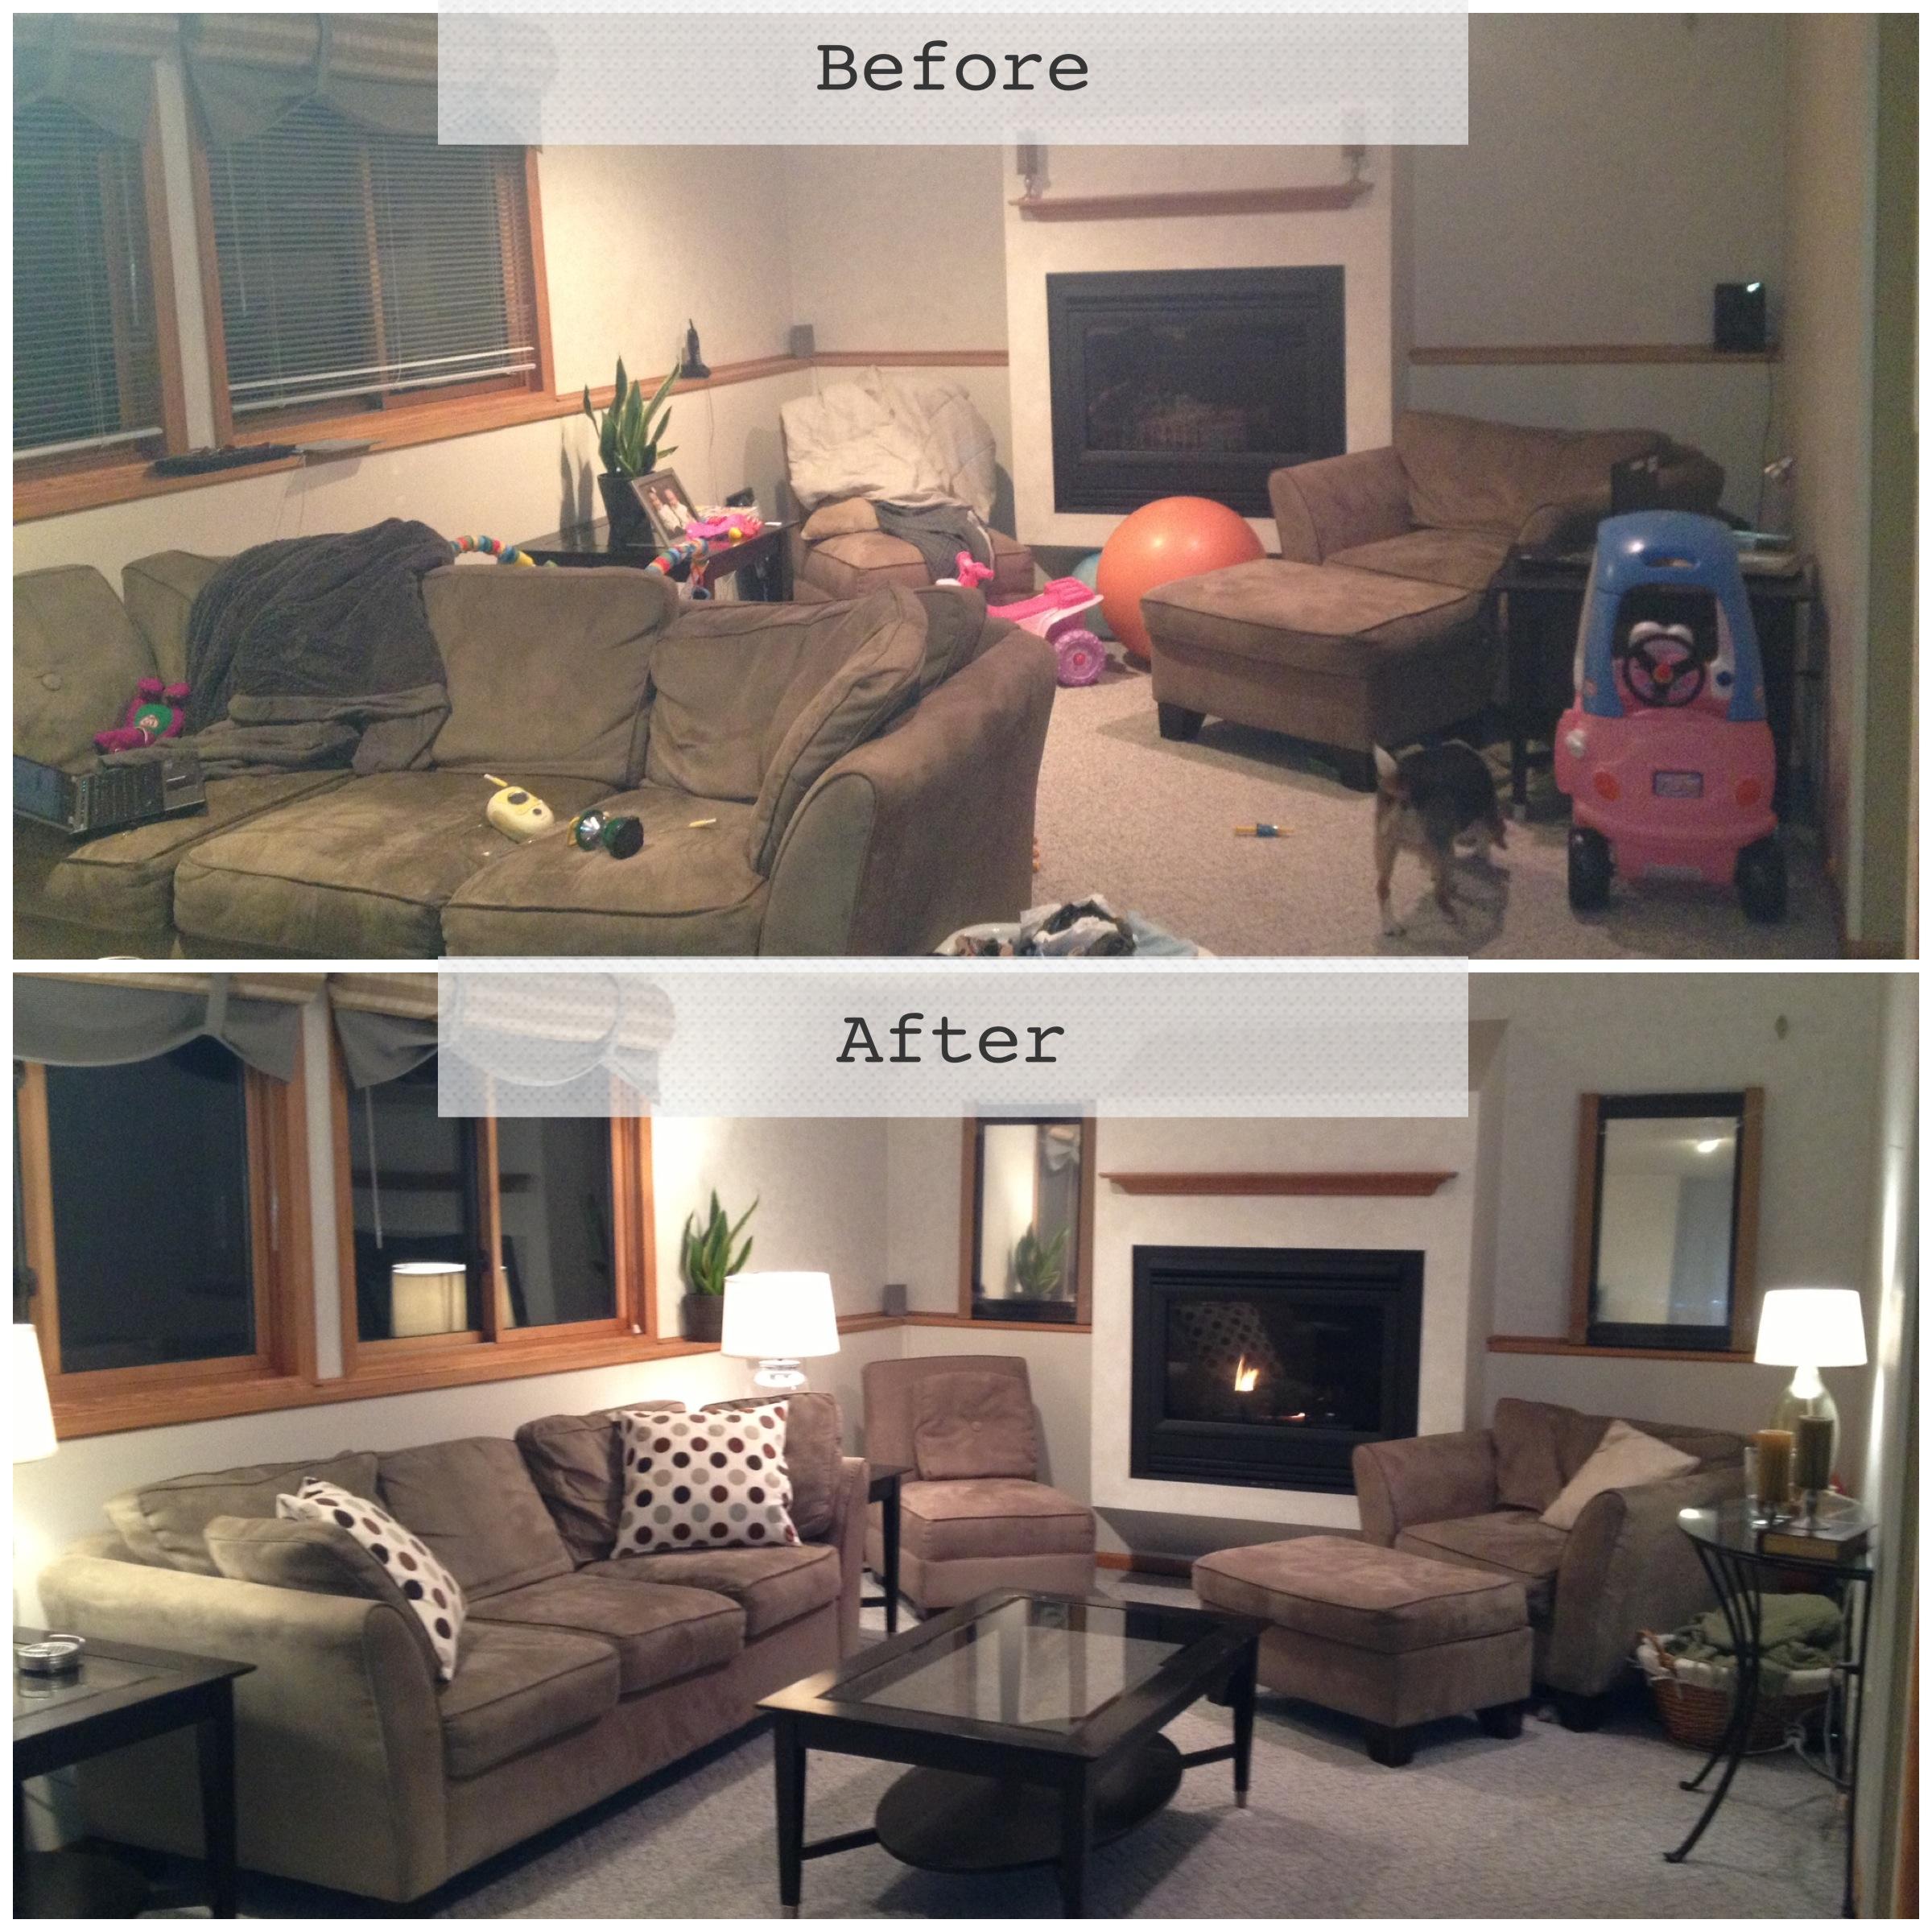 Home staging a humble moment bria hammel interiors for Home staging before and after